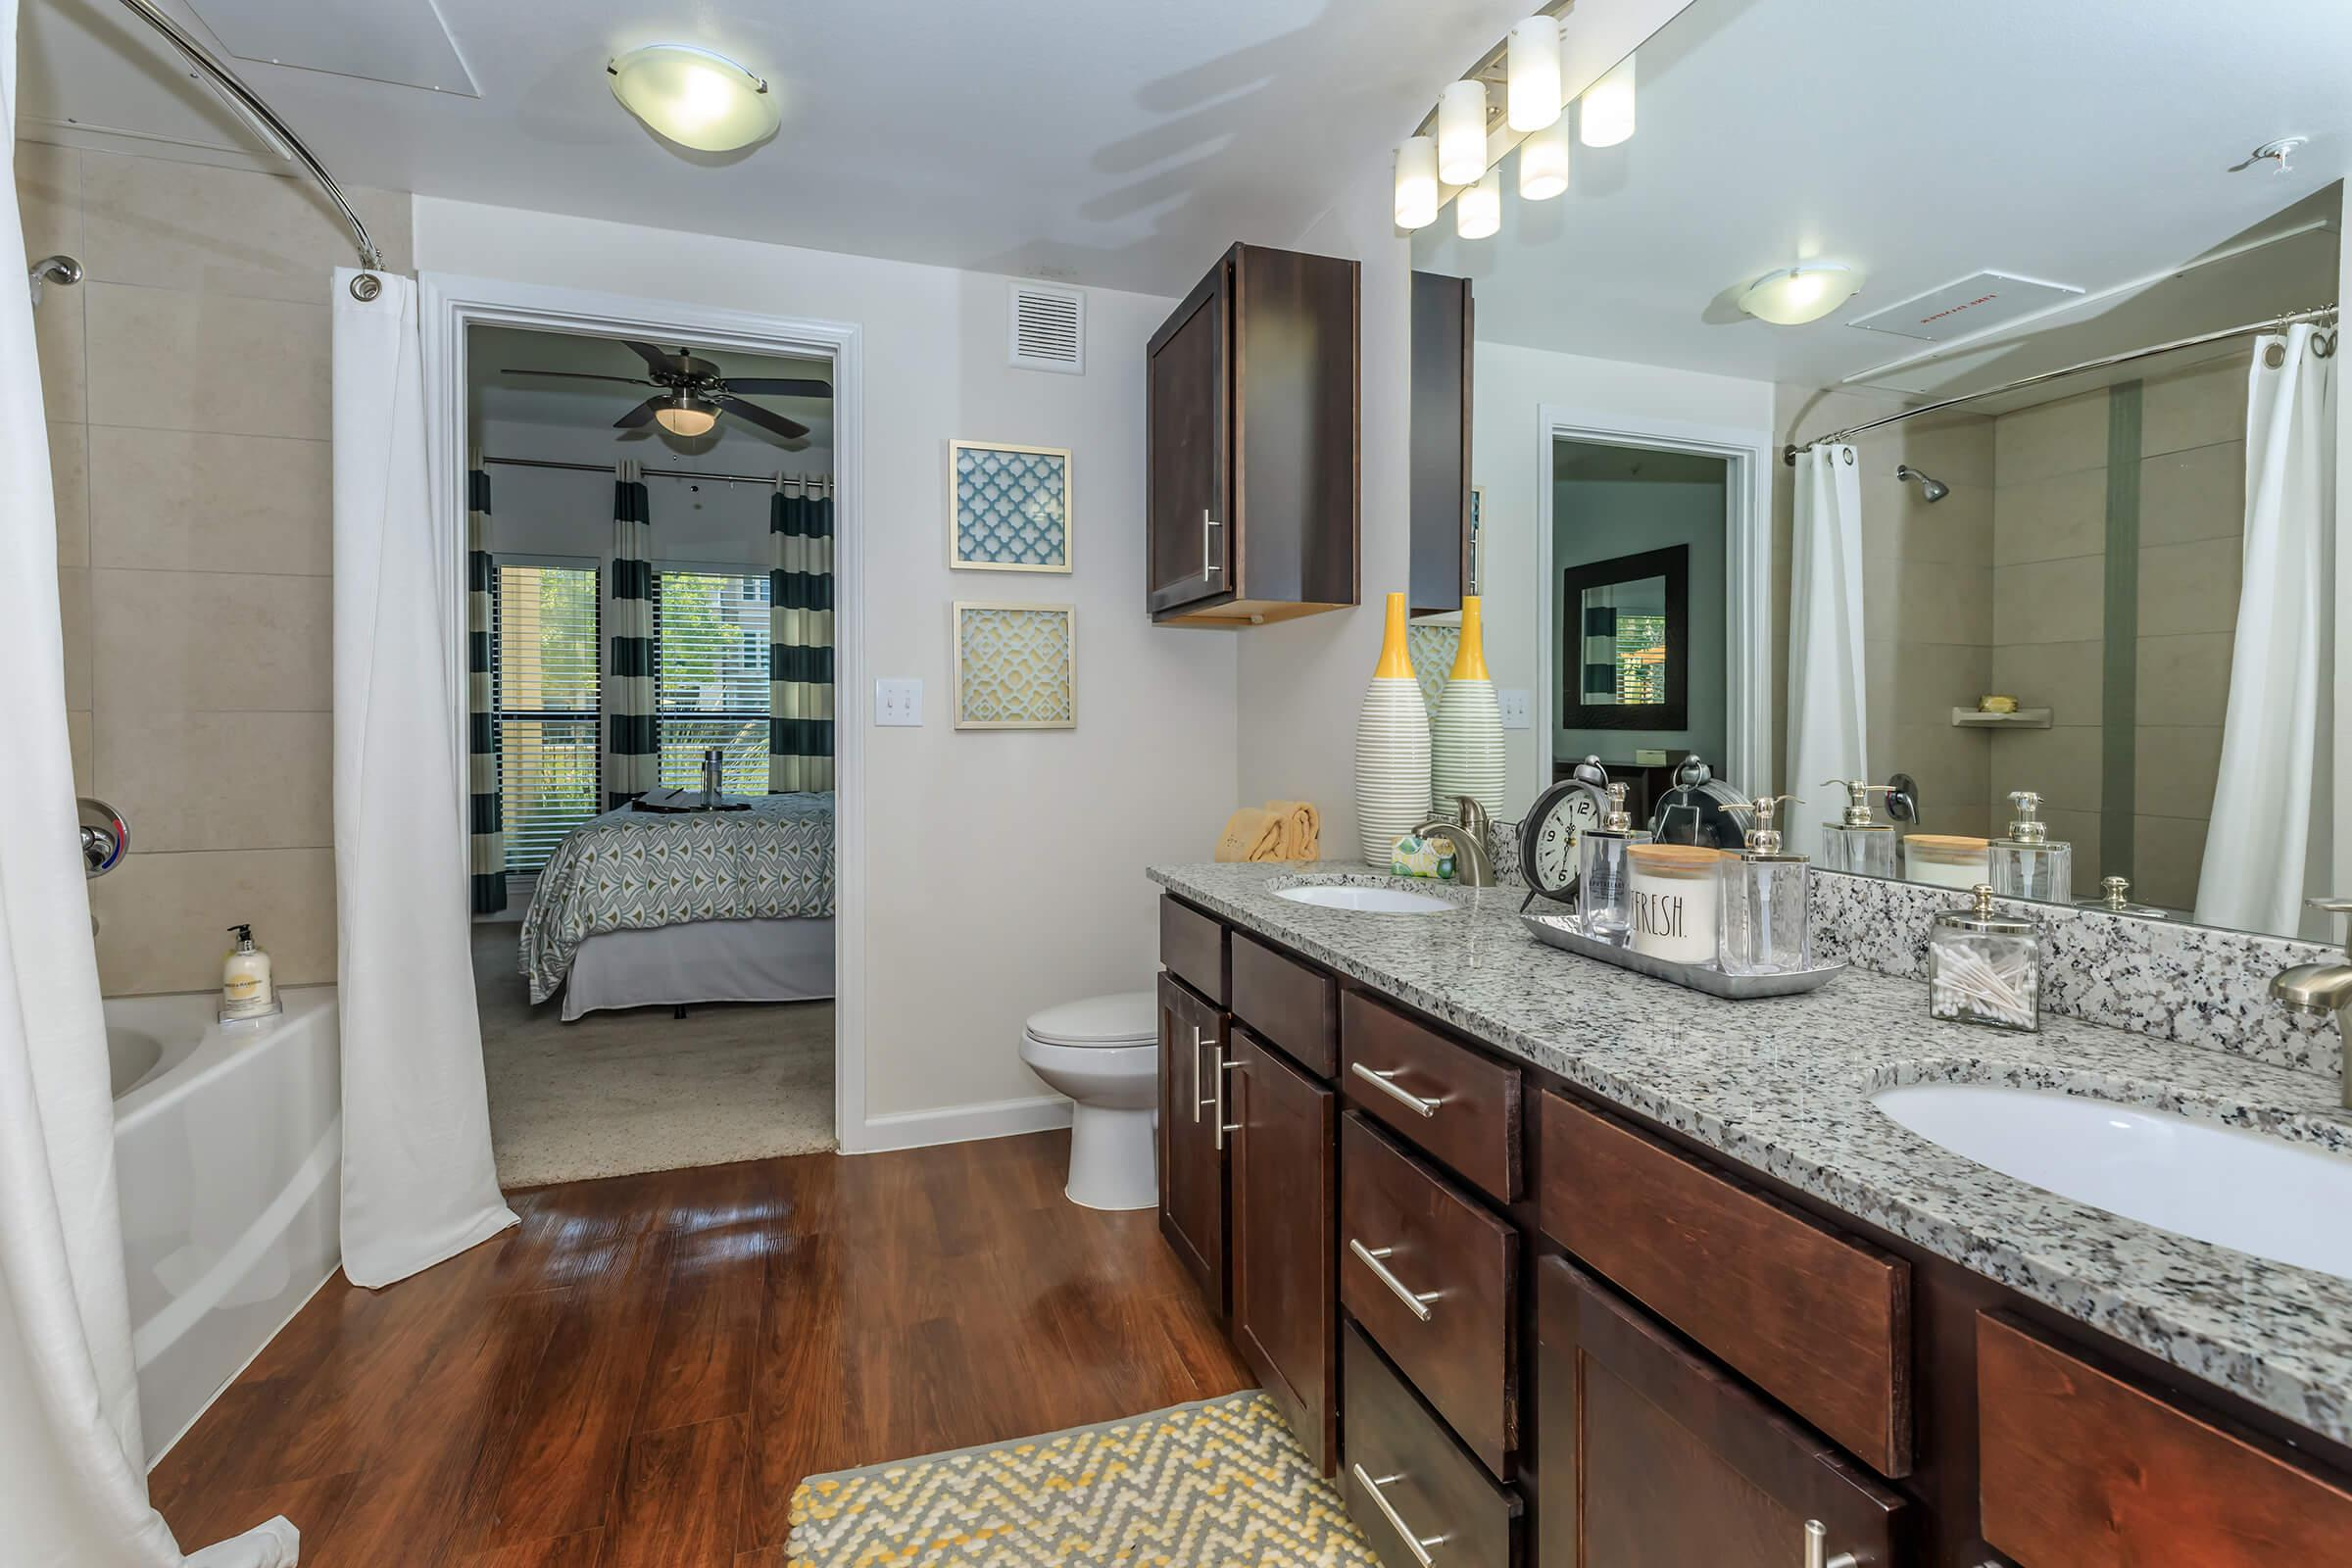 a kitchen with a sink and a mirror